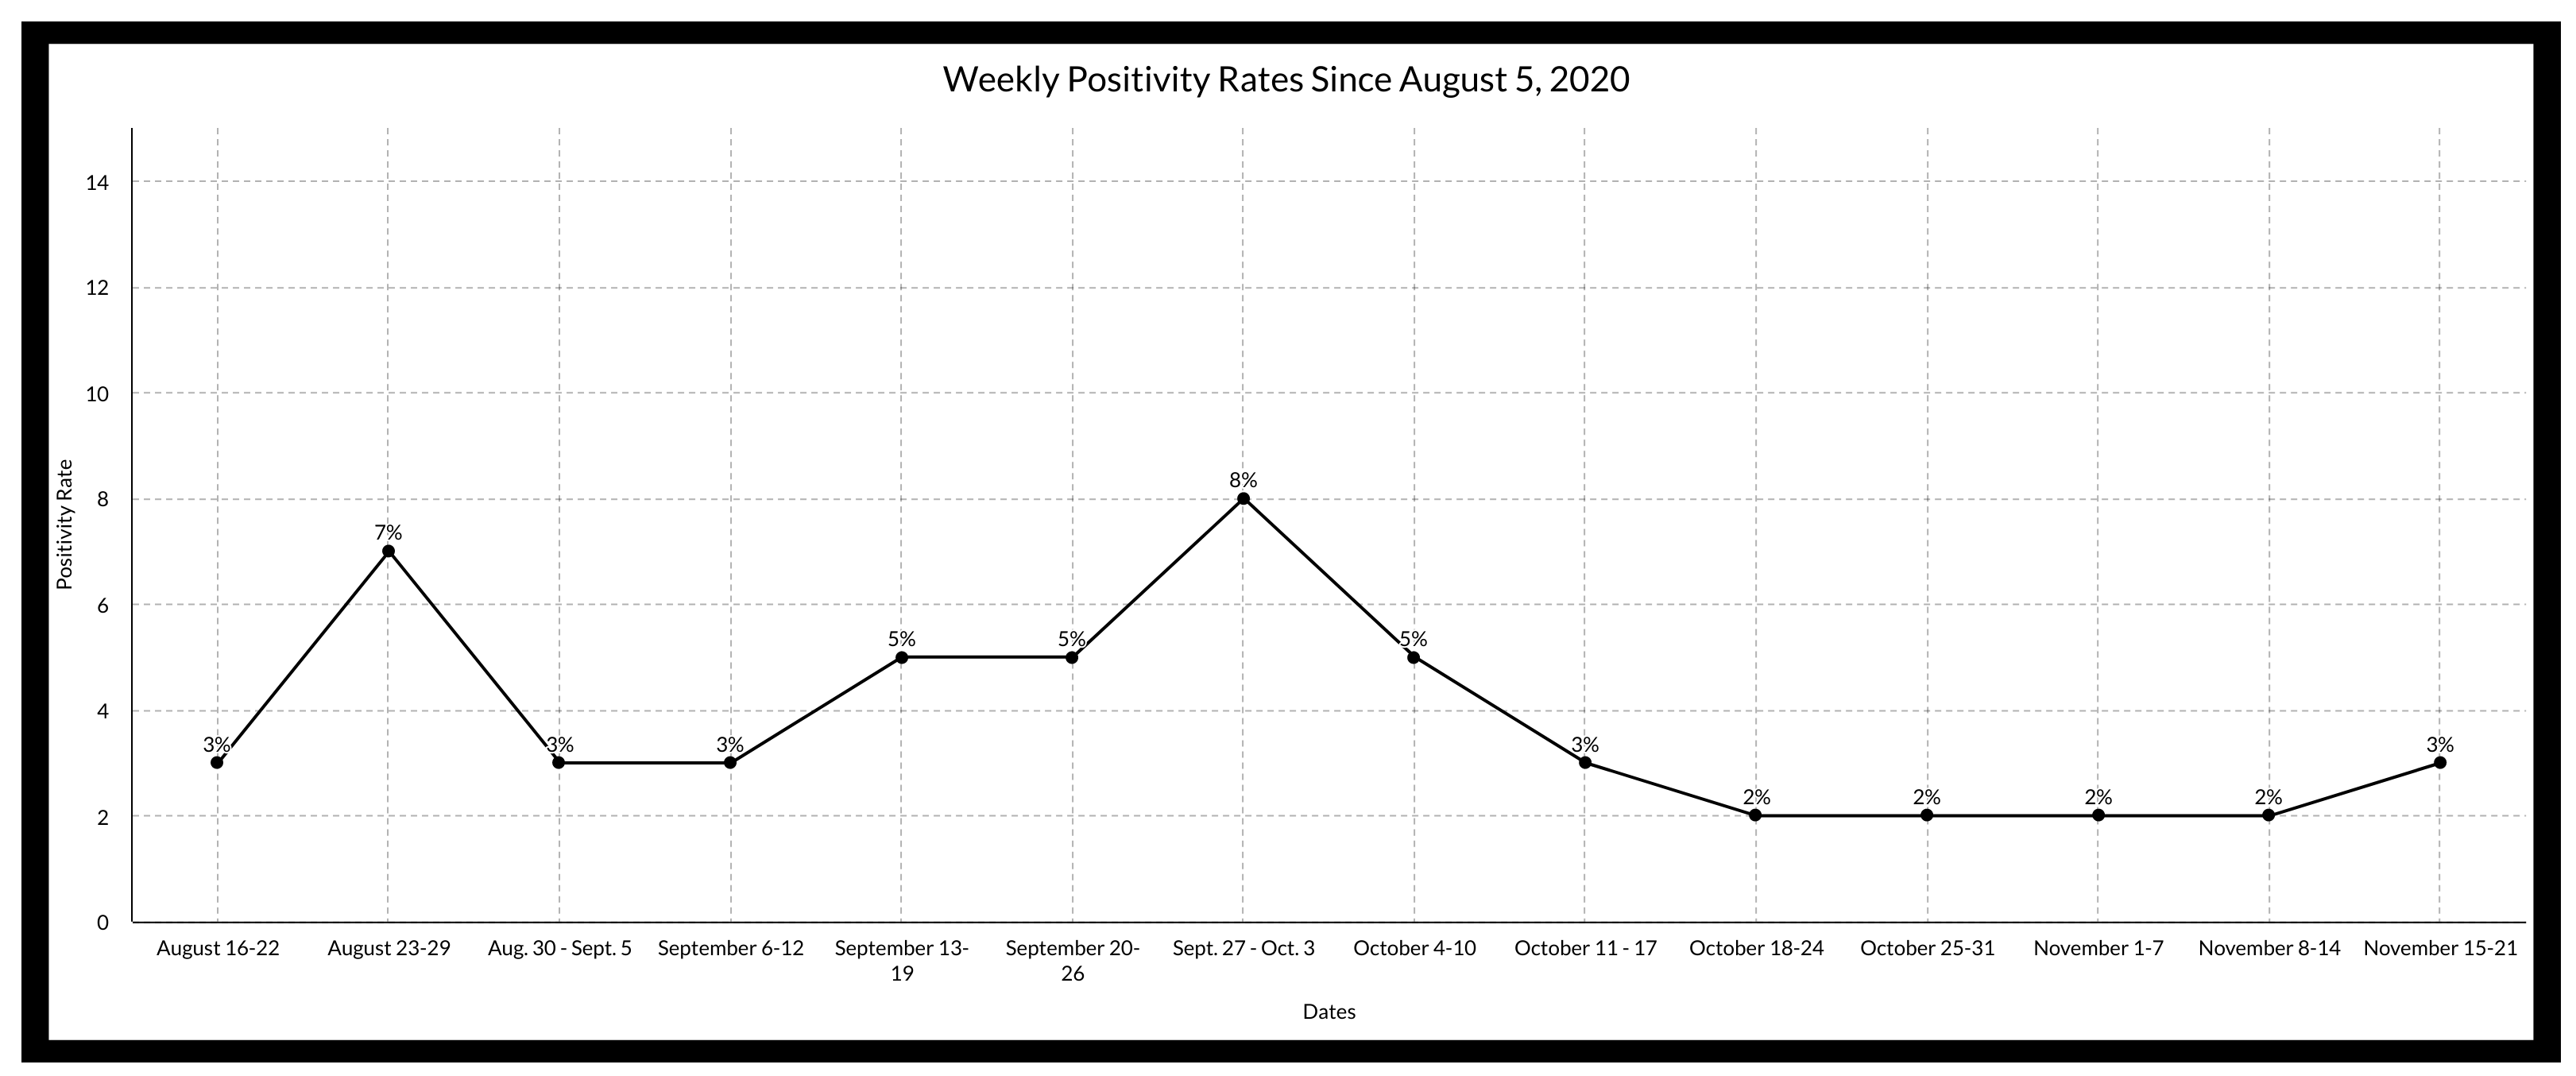 Weekly Positivity Rates Since August 2020